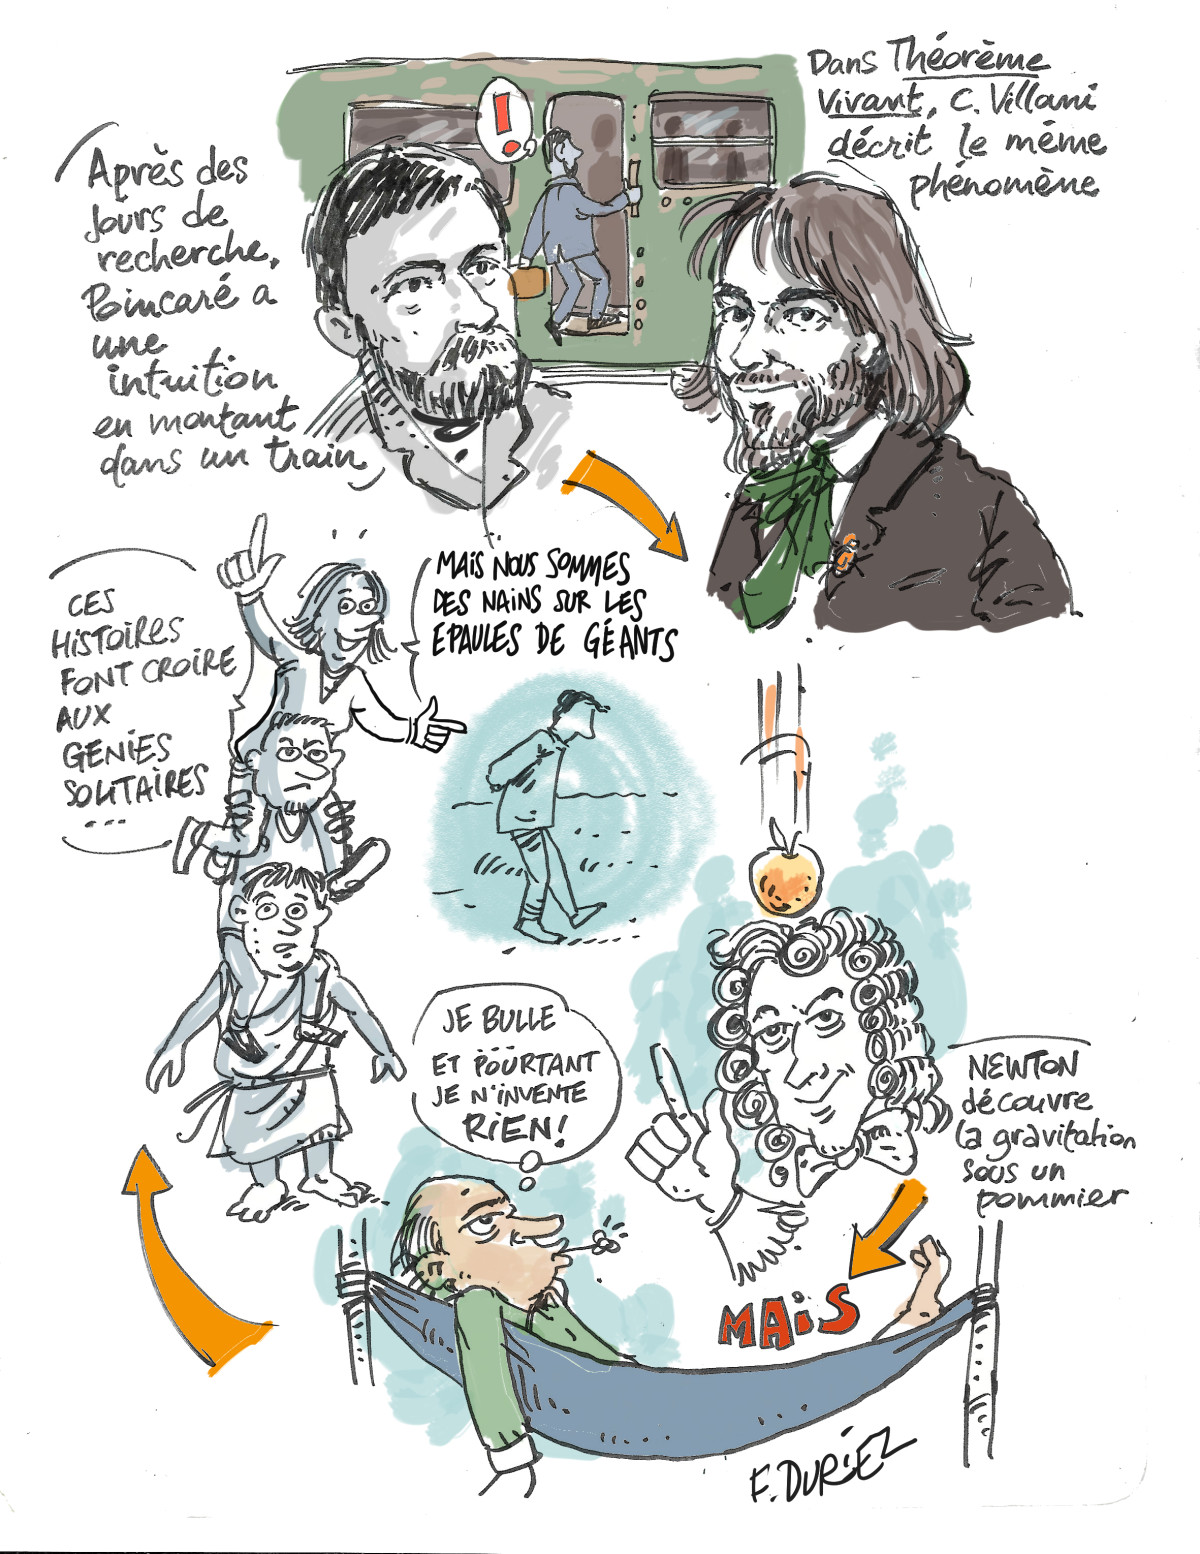 le moment eureke, Poincaré, Villani, Newton, etc